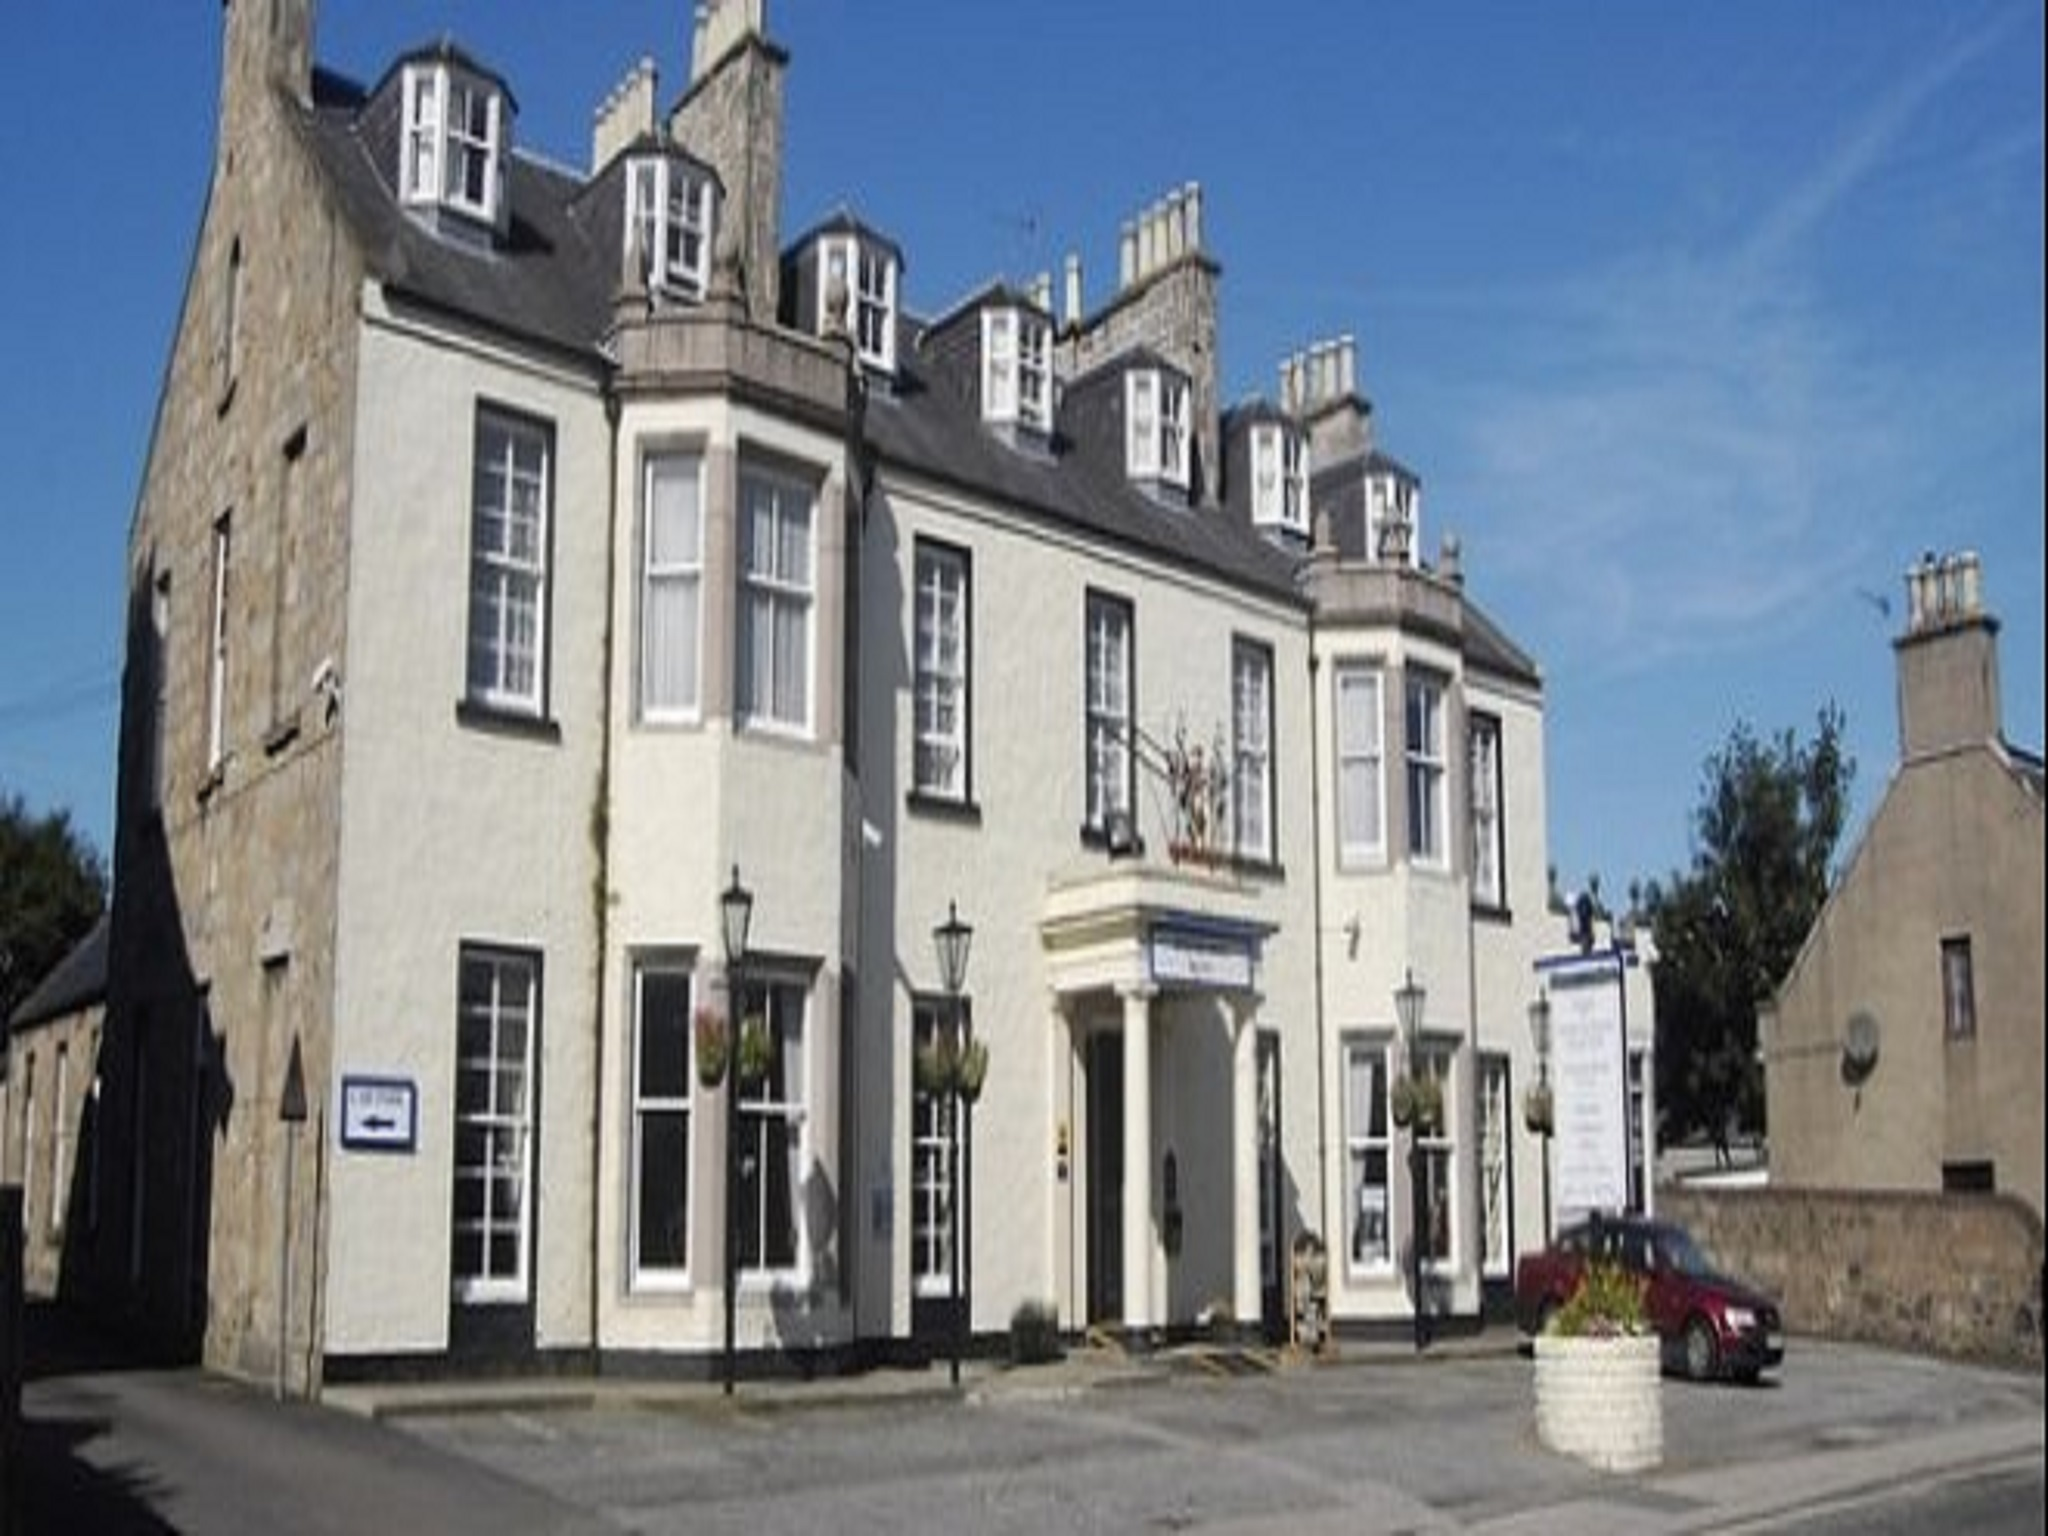 kintore arms hotel - inverurie, aberdeenshire – great prices at